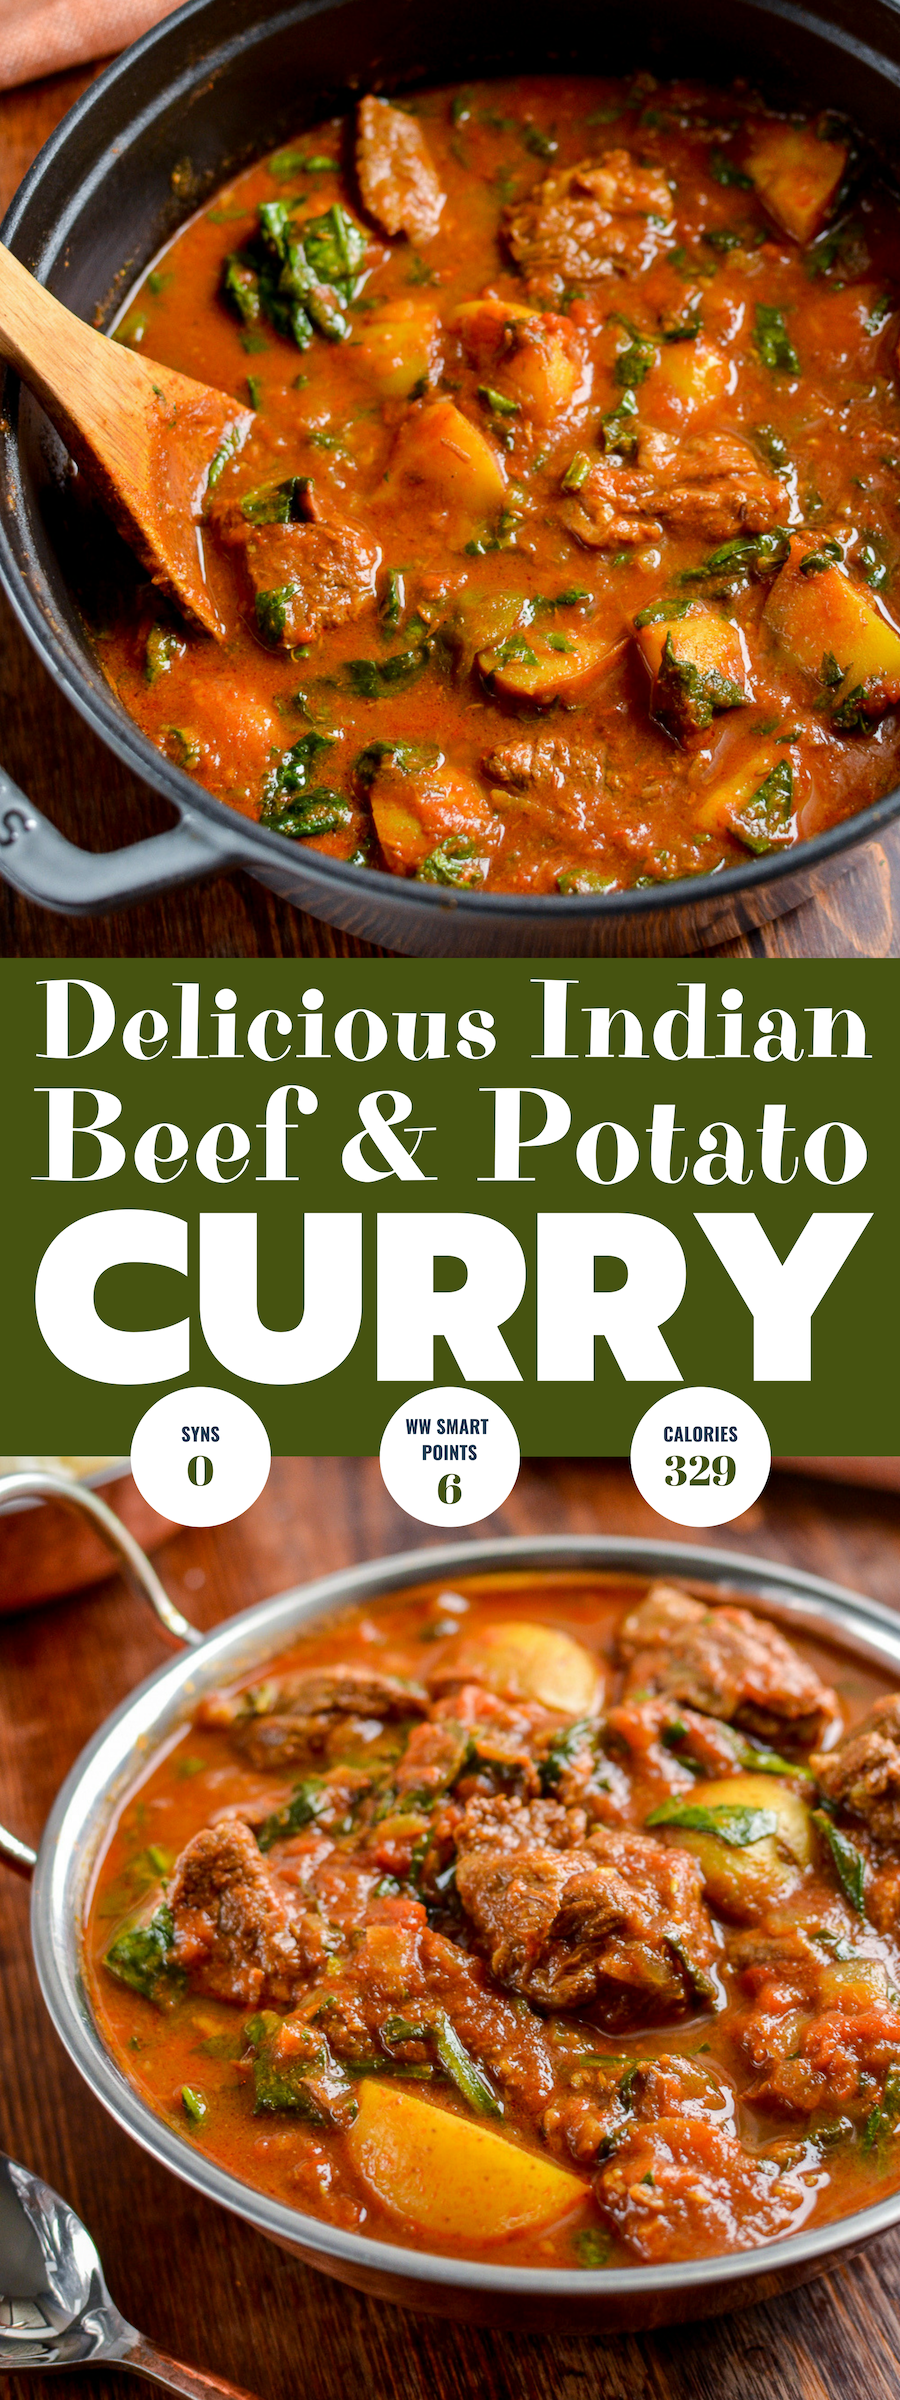 beef and potato curry pin image